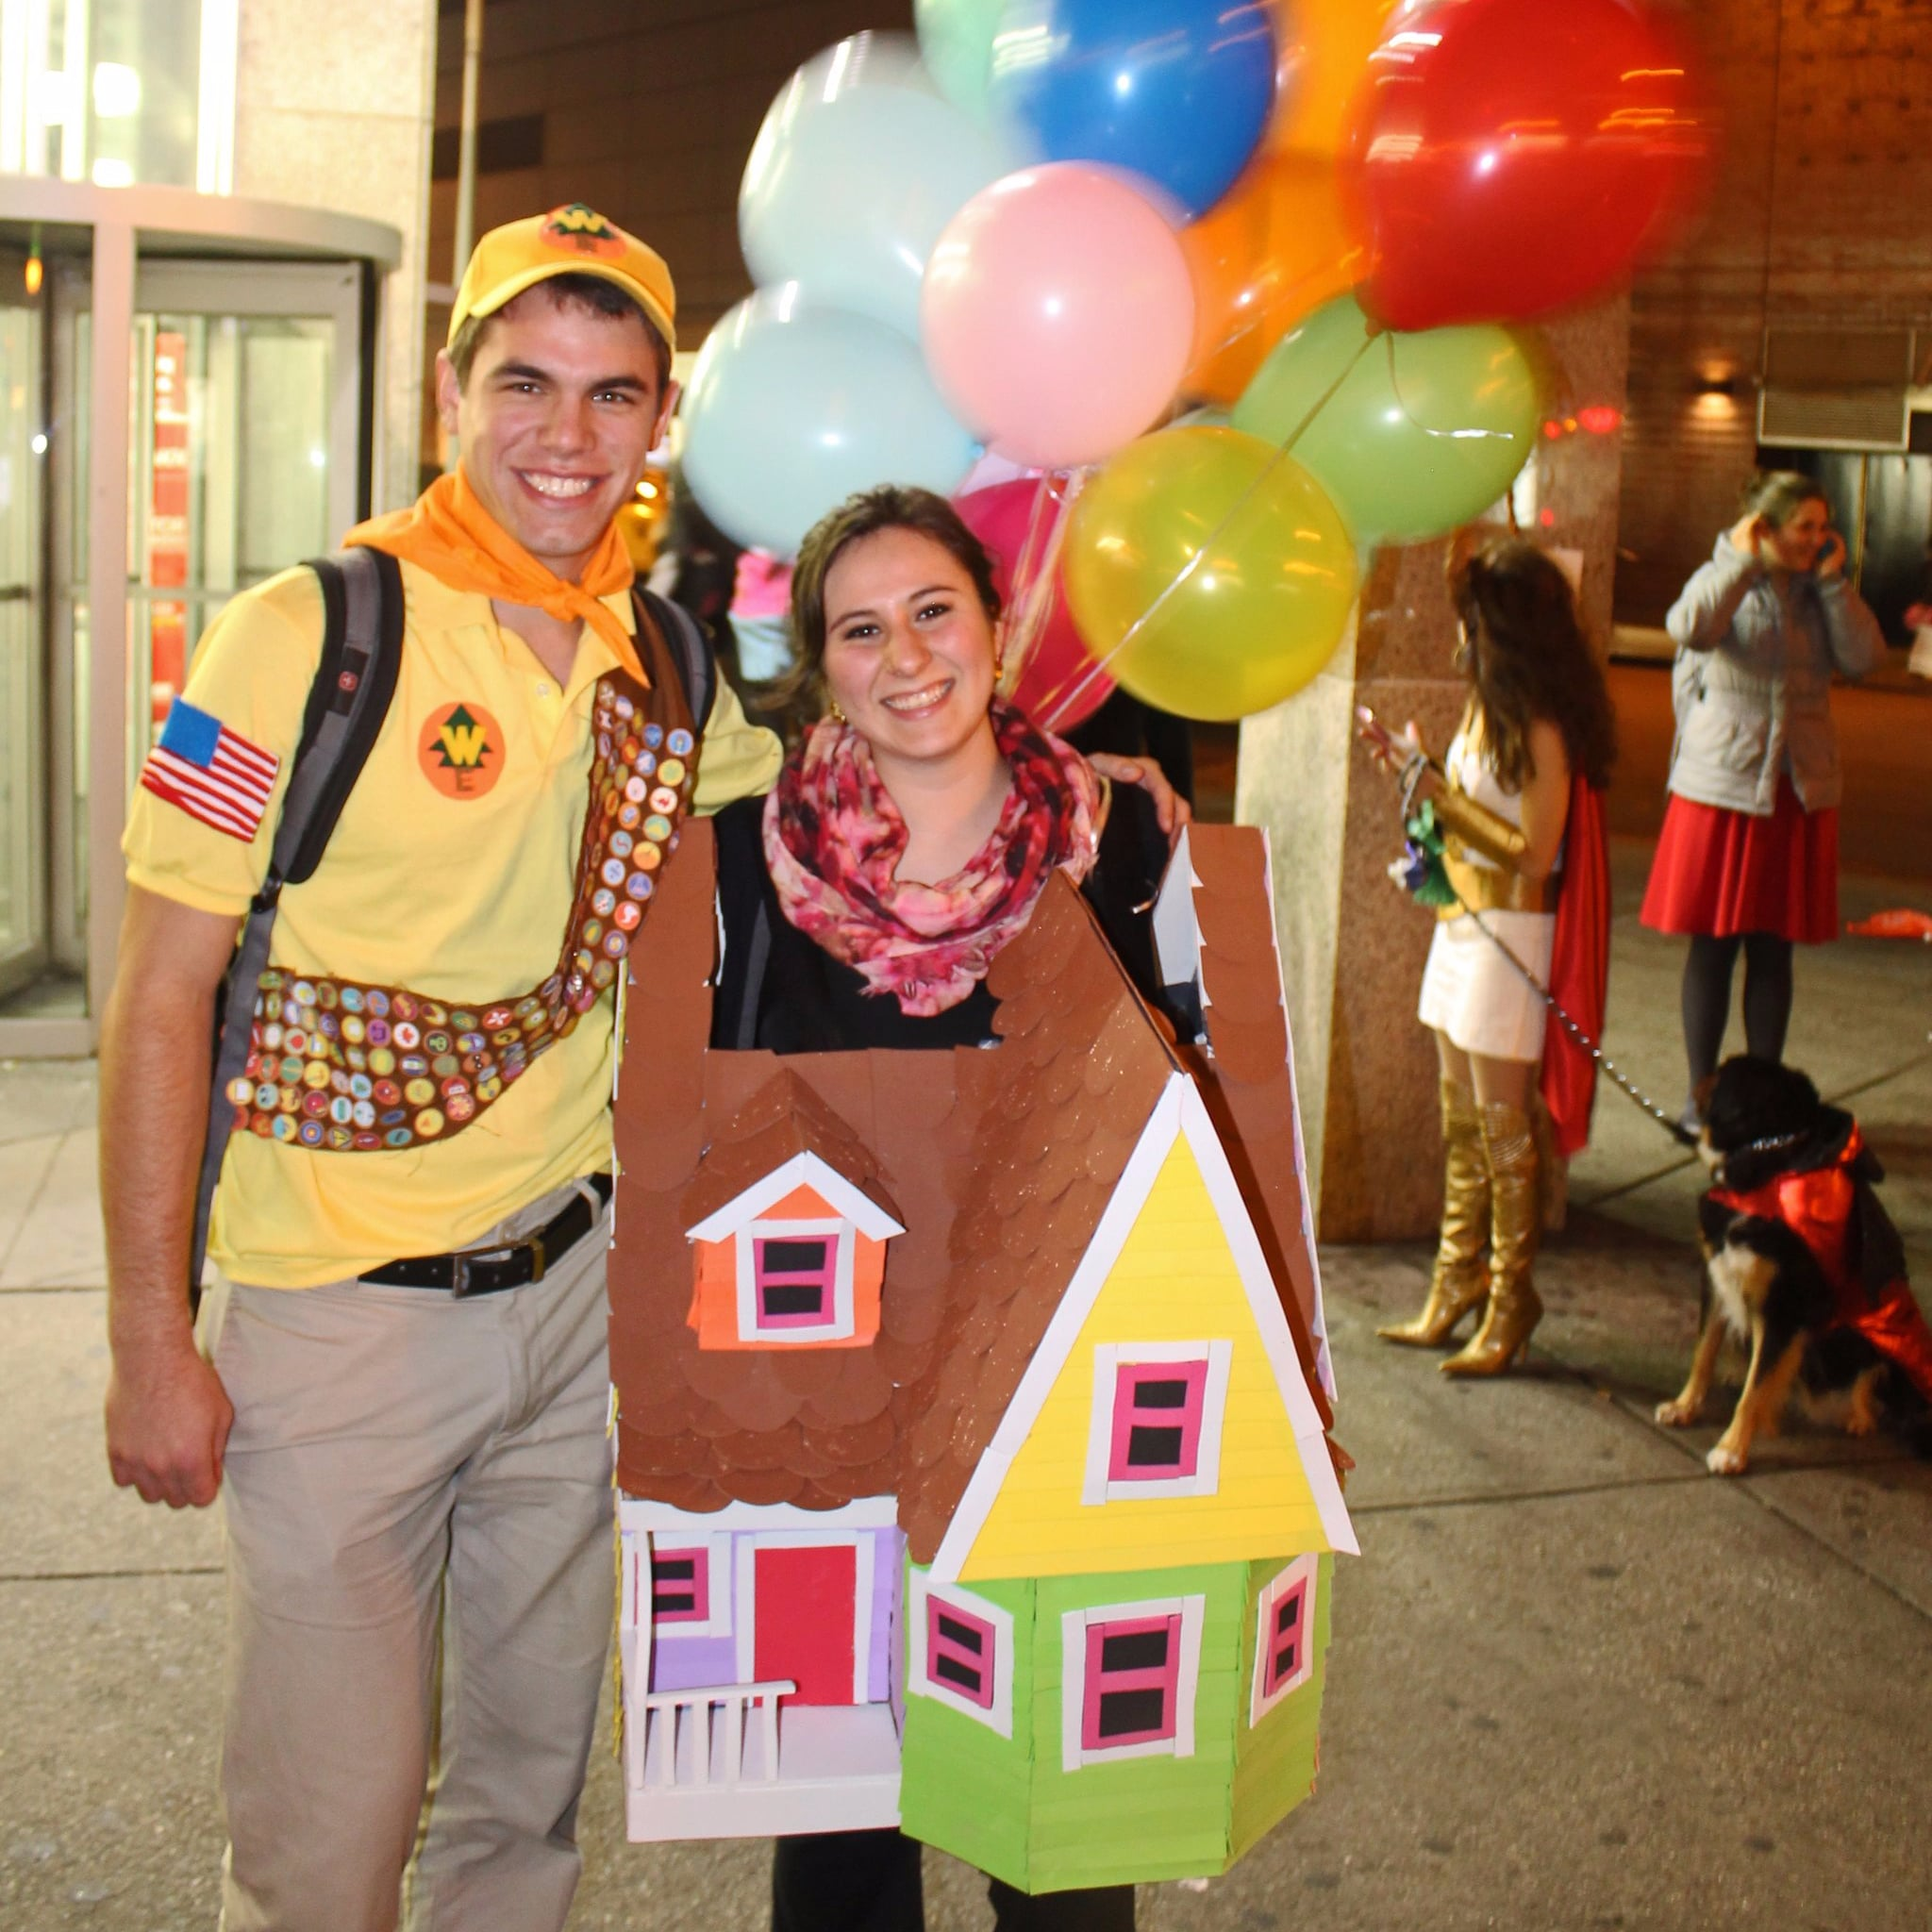 Cheap diy couples halloween costumes popsugar smart living solutioingenieria Gallery